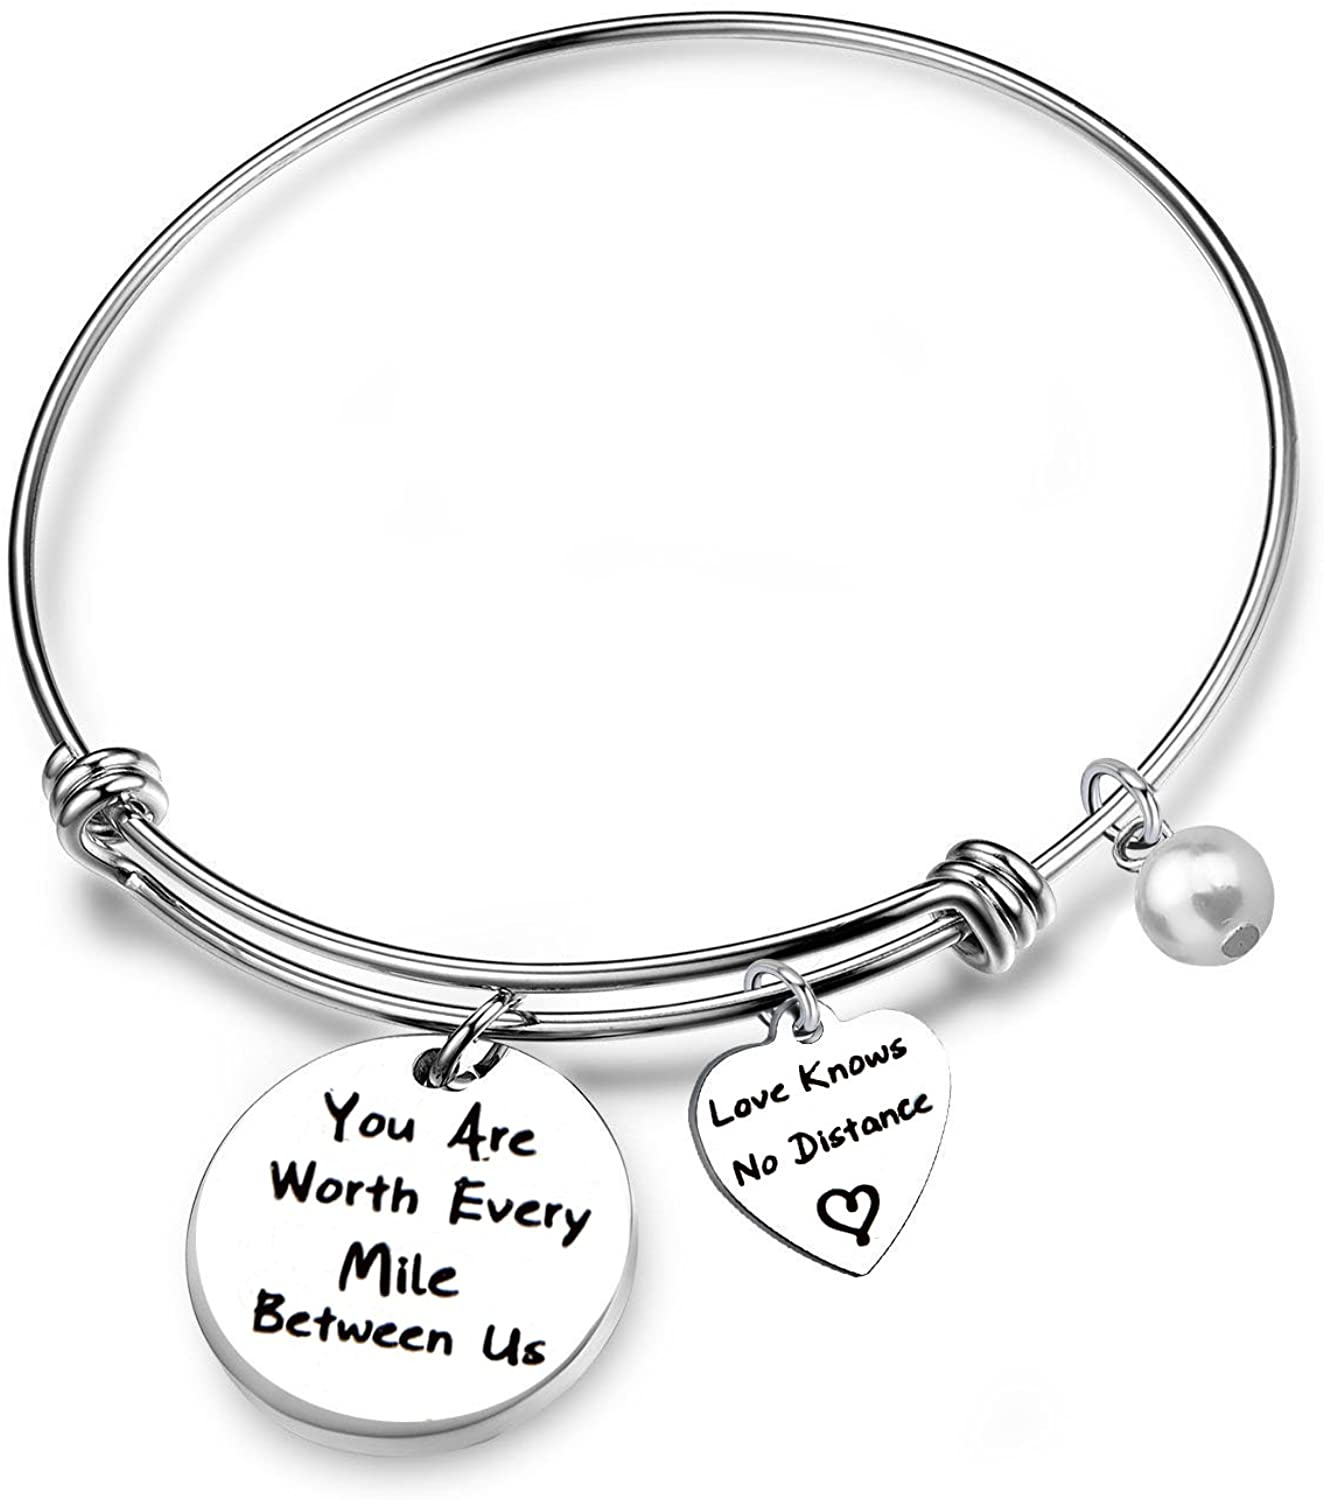 FEELMEM Anniversary Bracelet You are Worth Every Mile Between Us Adjustable Bangle Long Distance Relationships Gifts